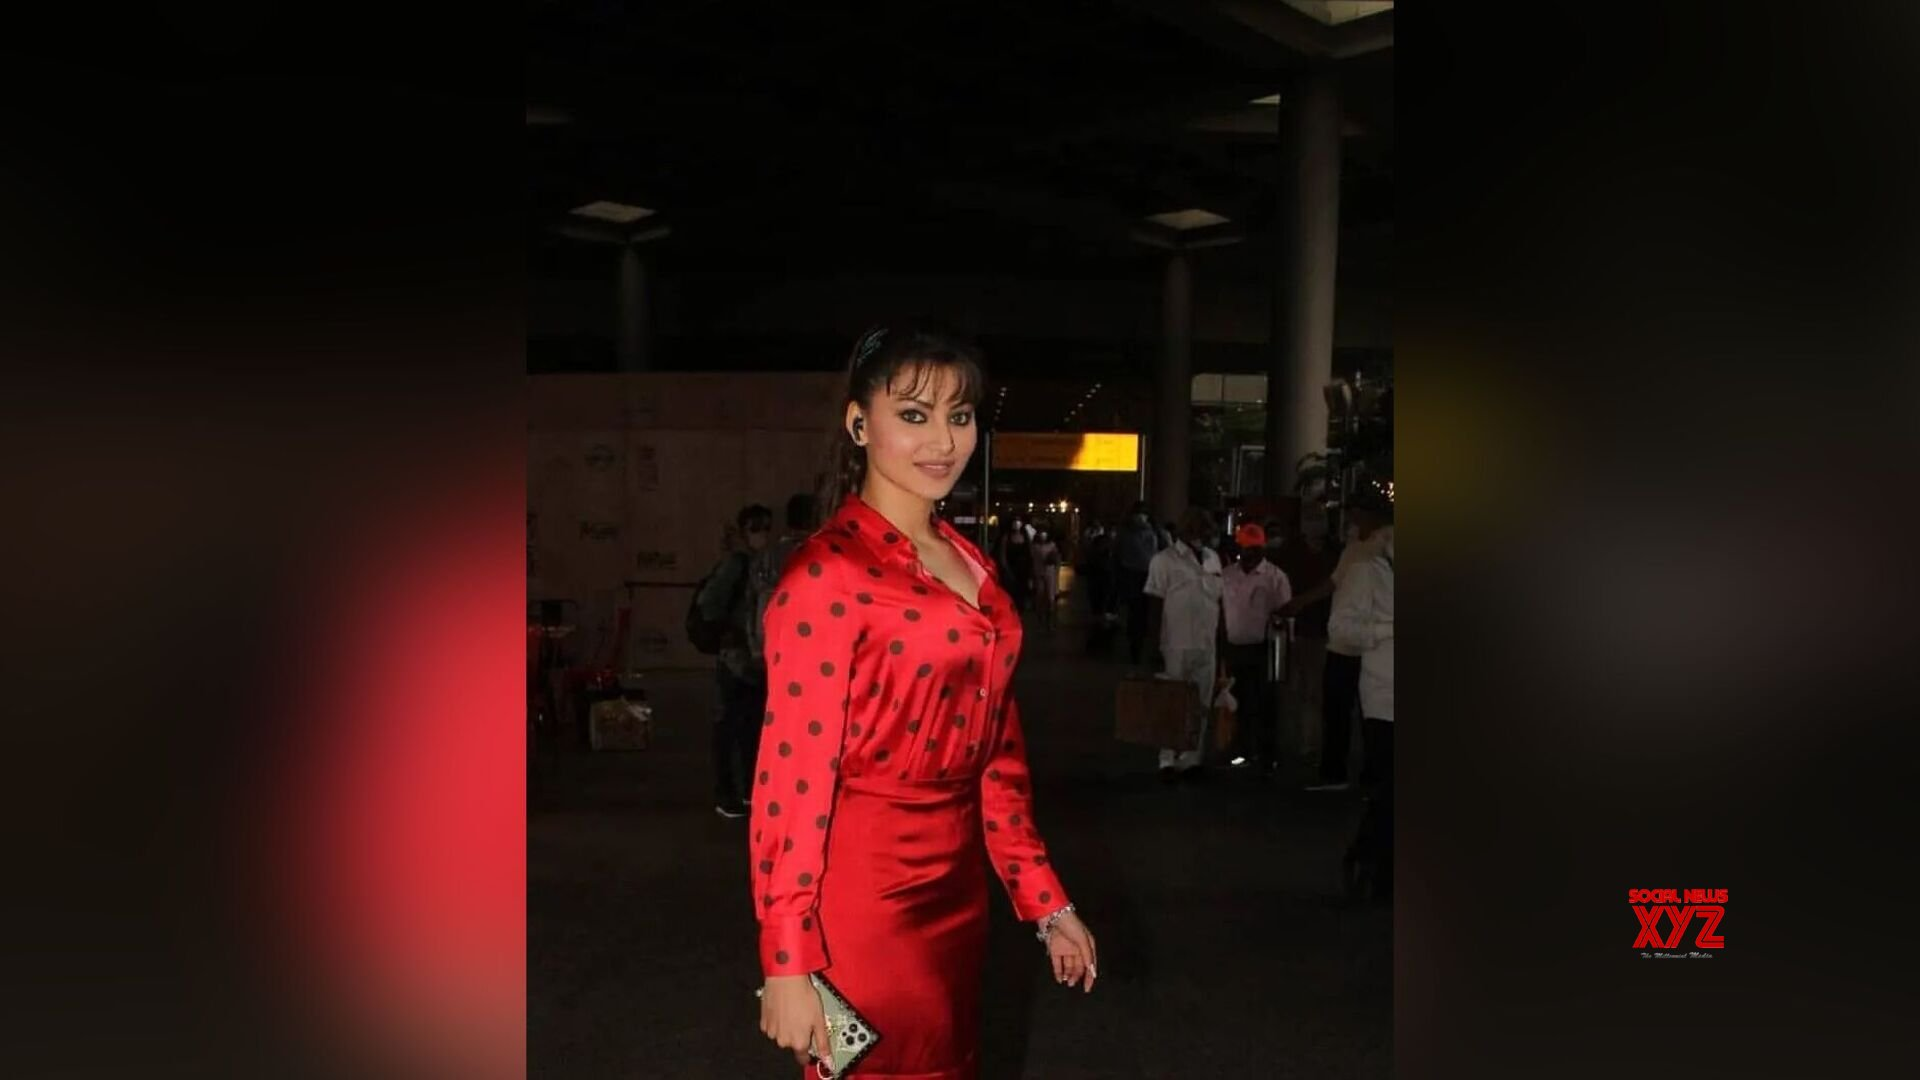 Urvashi Rautela was spotted at Mumbai Airport, check out the diva's fashionable look